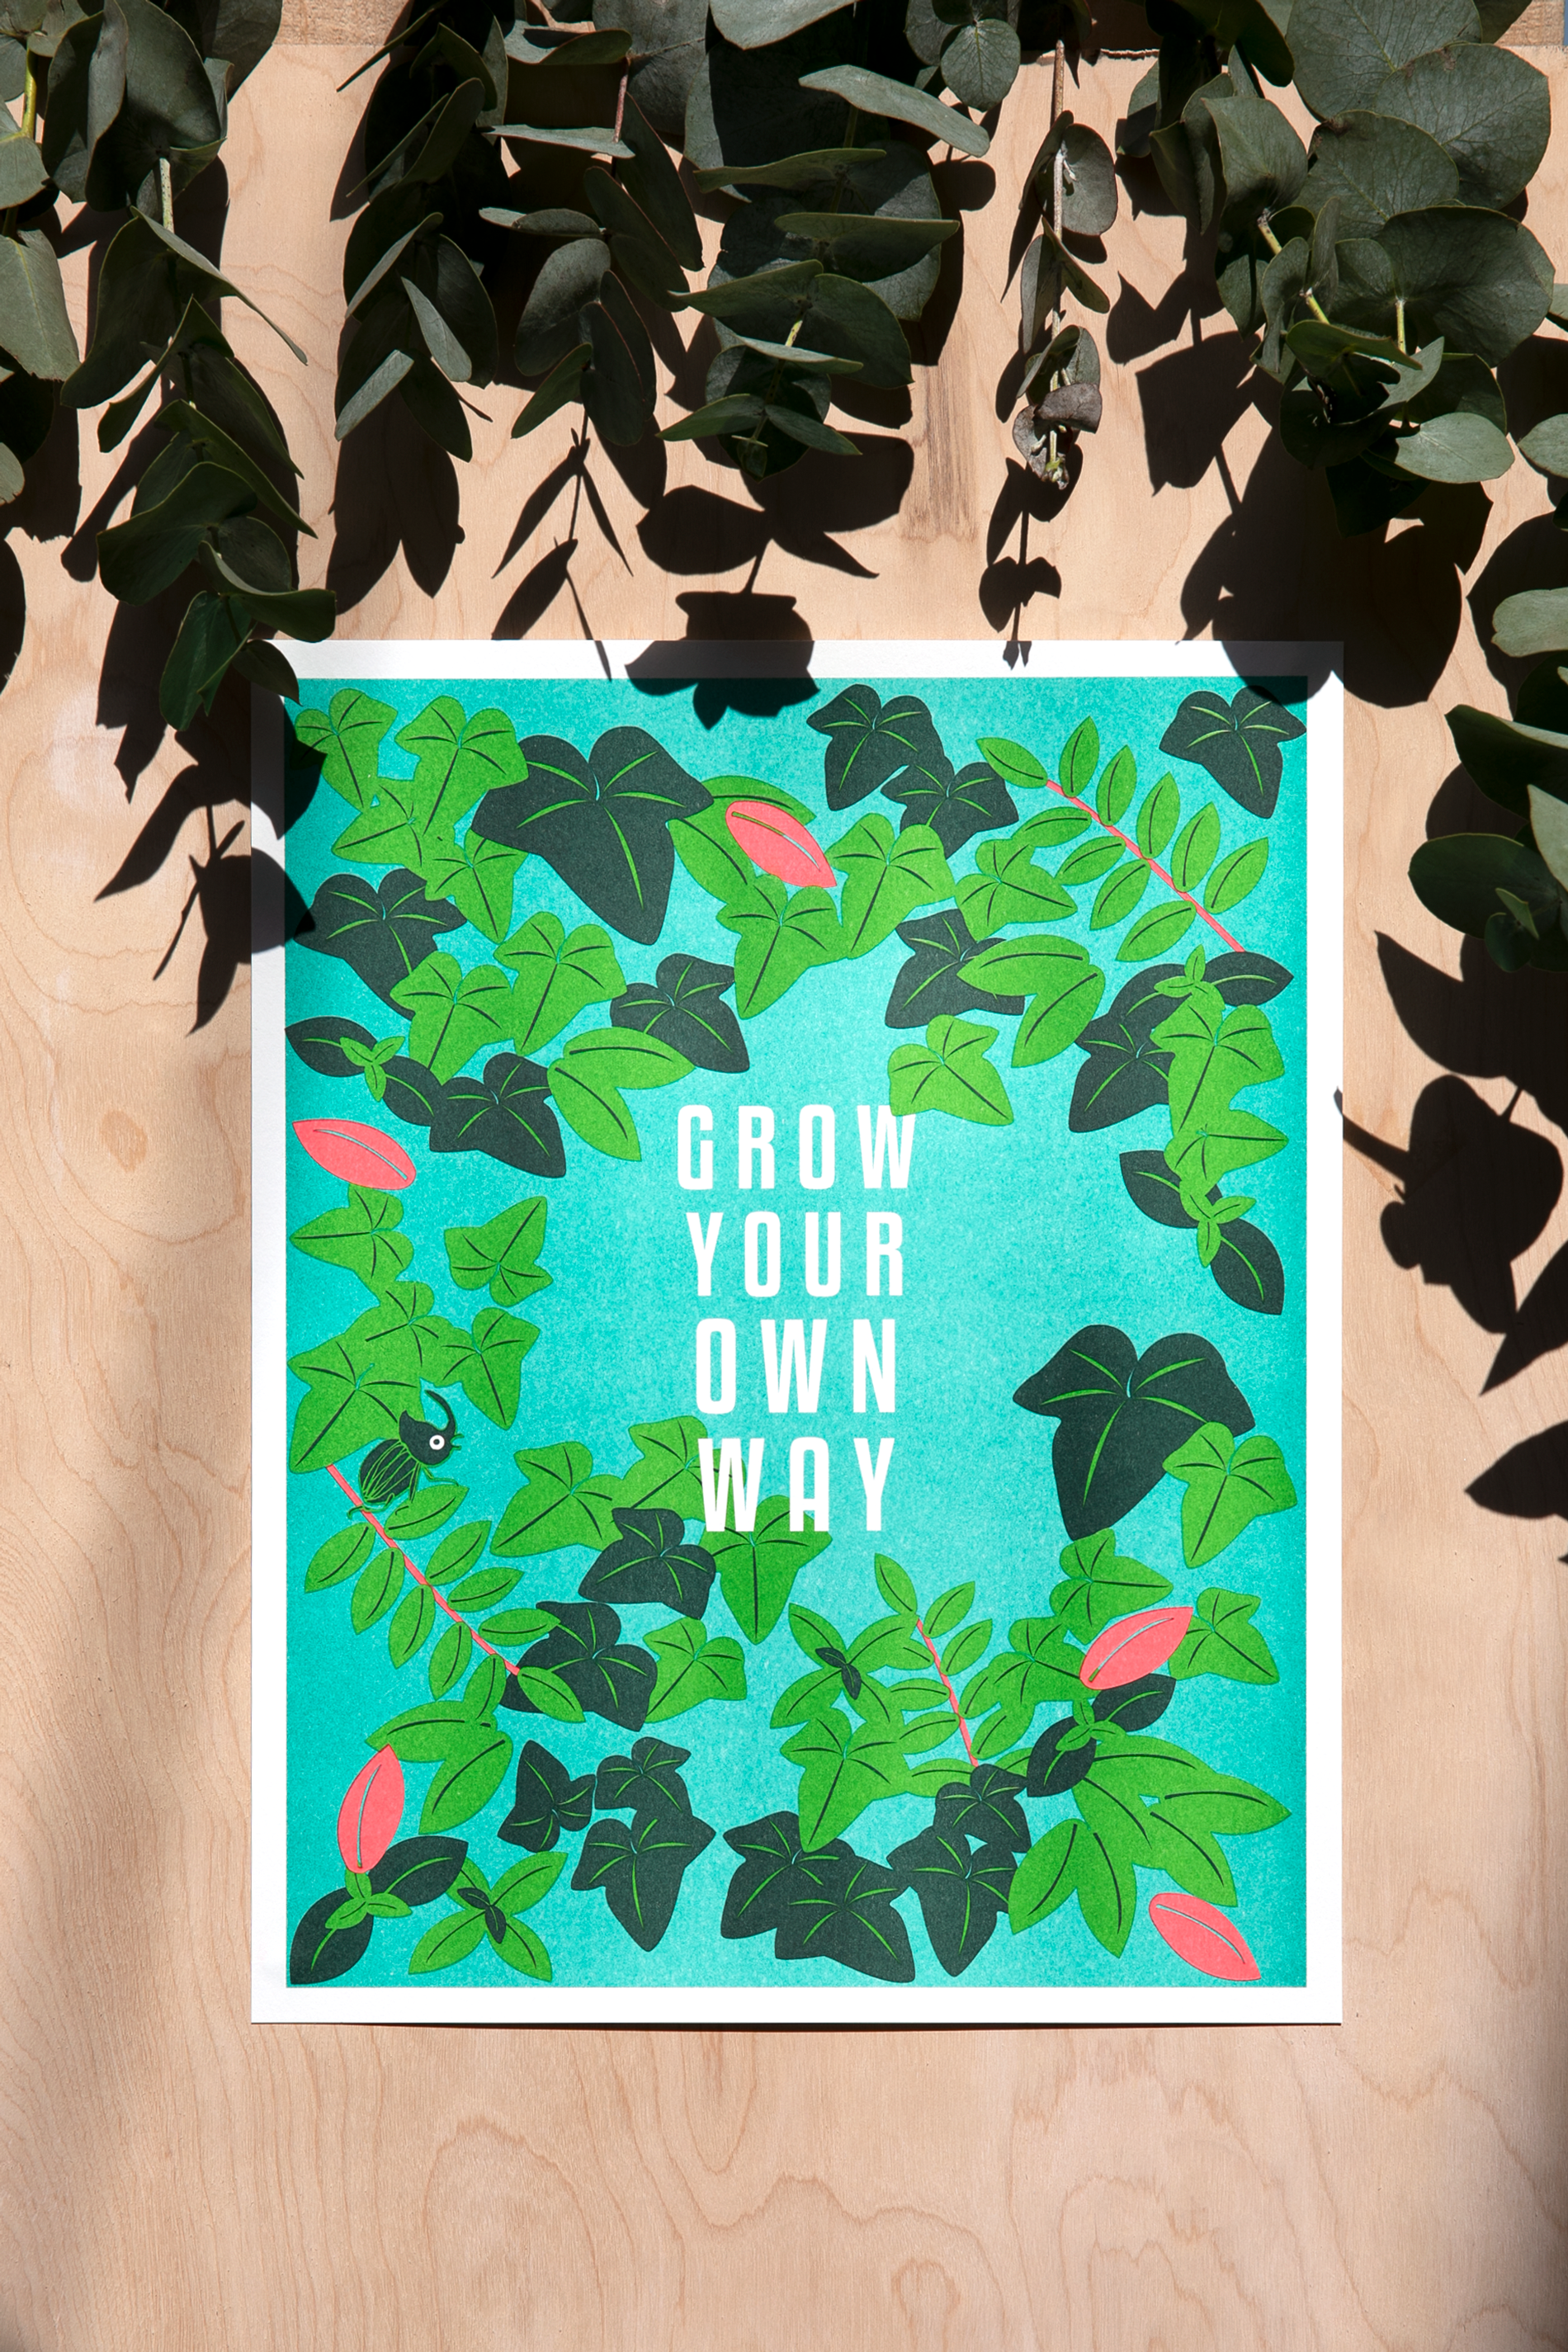 ILP-Riso-GrowYourOwnWay-Flower-Shadows_0.png